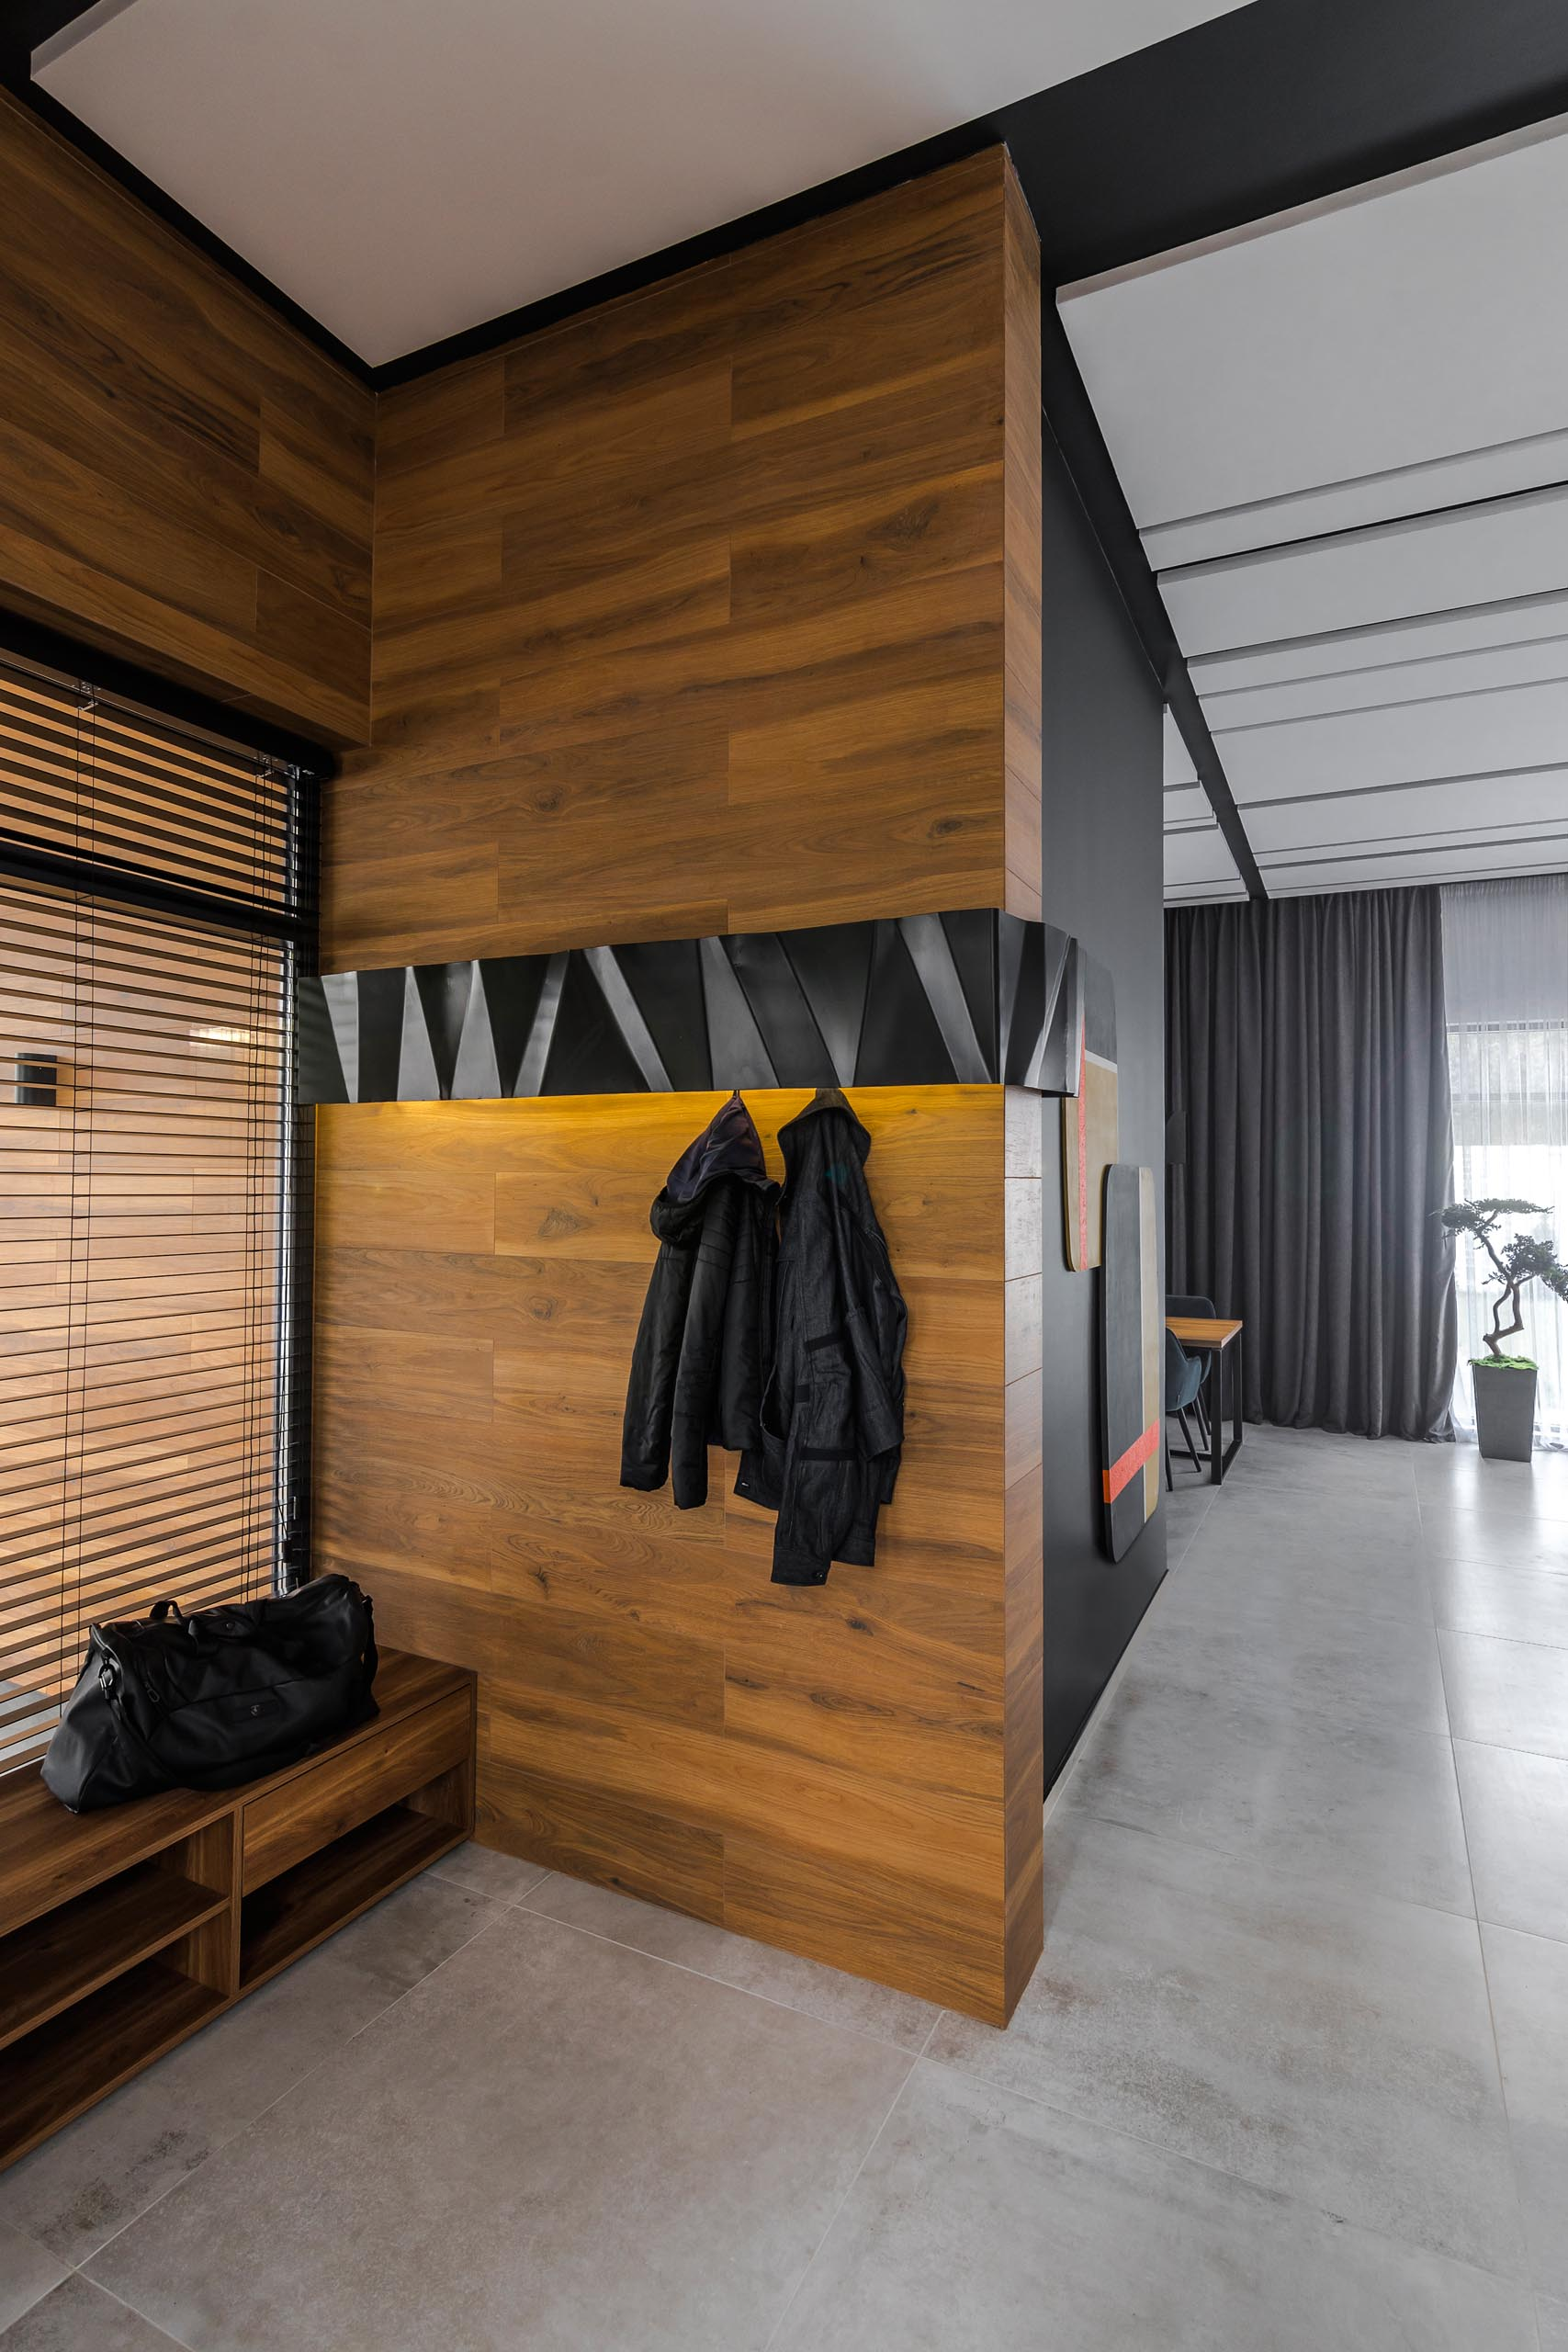 A modern wood entryway with a black metal accent that has hidden hooks and lighting.